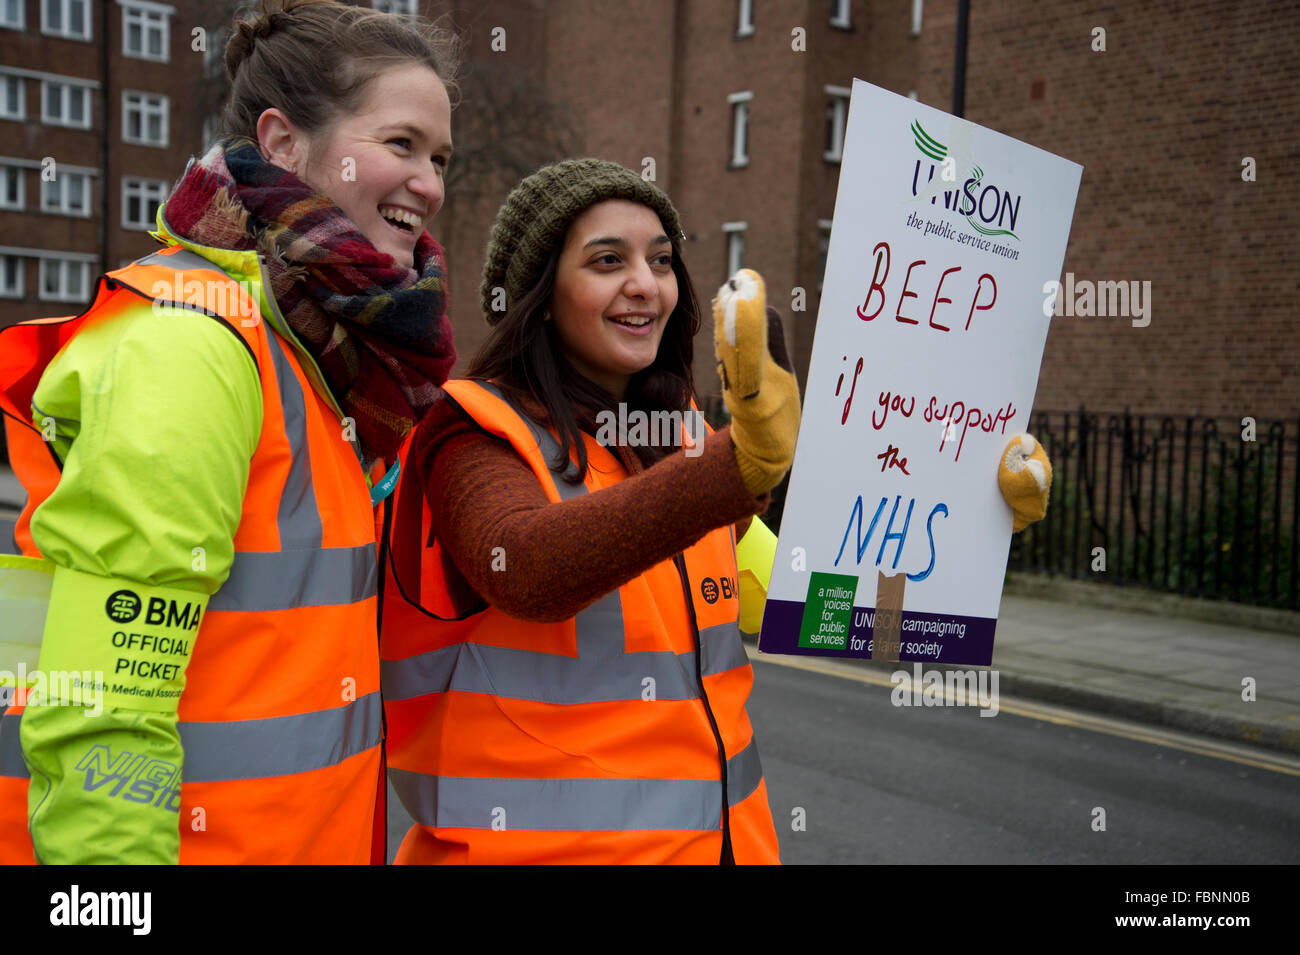 Homerton hospital, Hackney, London. Junior doctors on strike for 24 hours, asking motorists to beep in support. - Stock Image